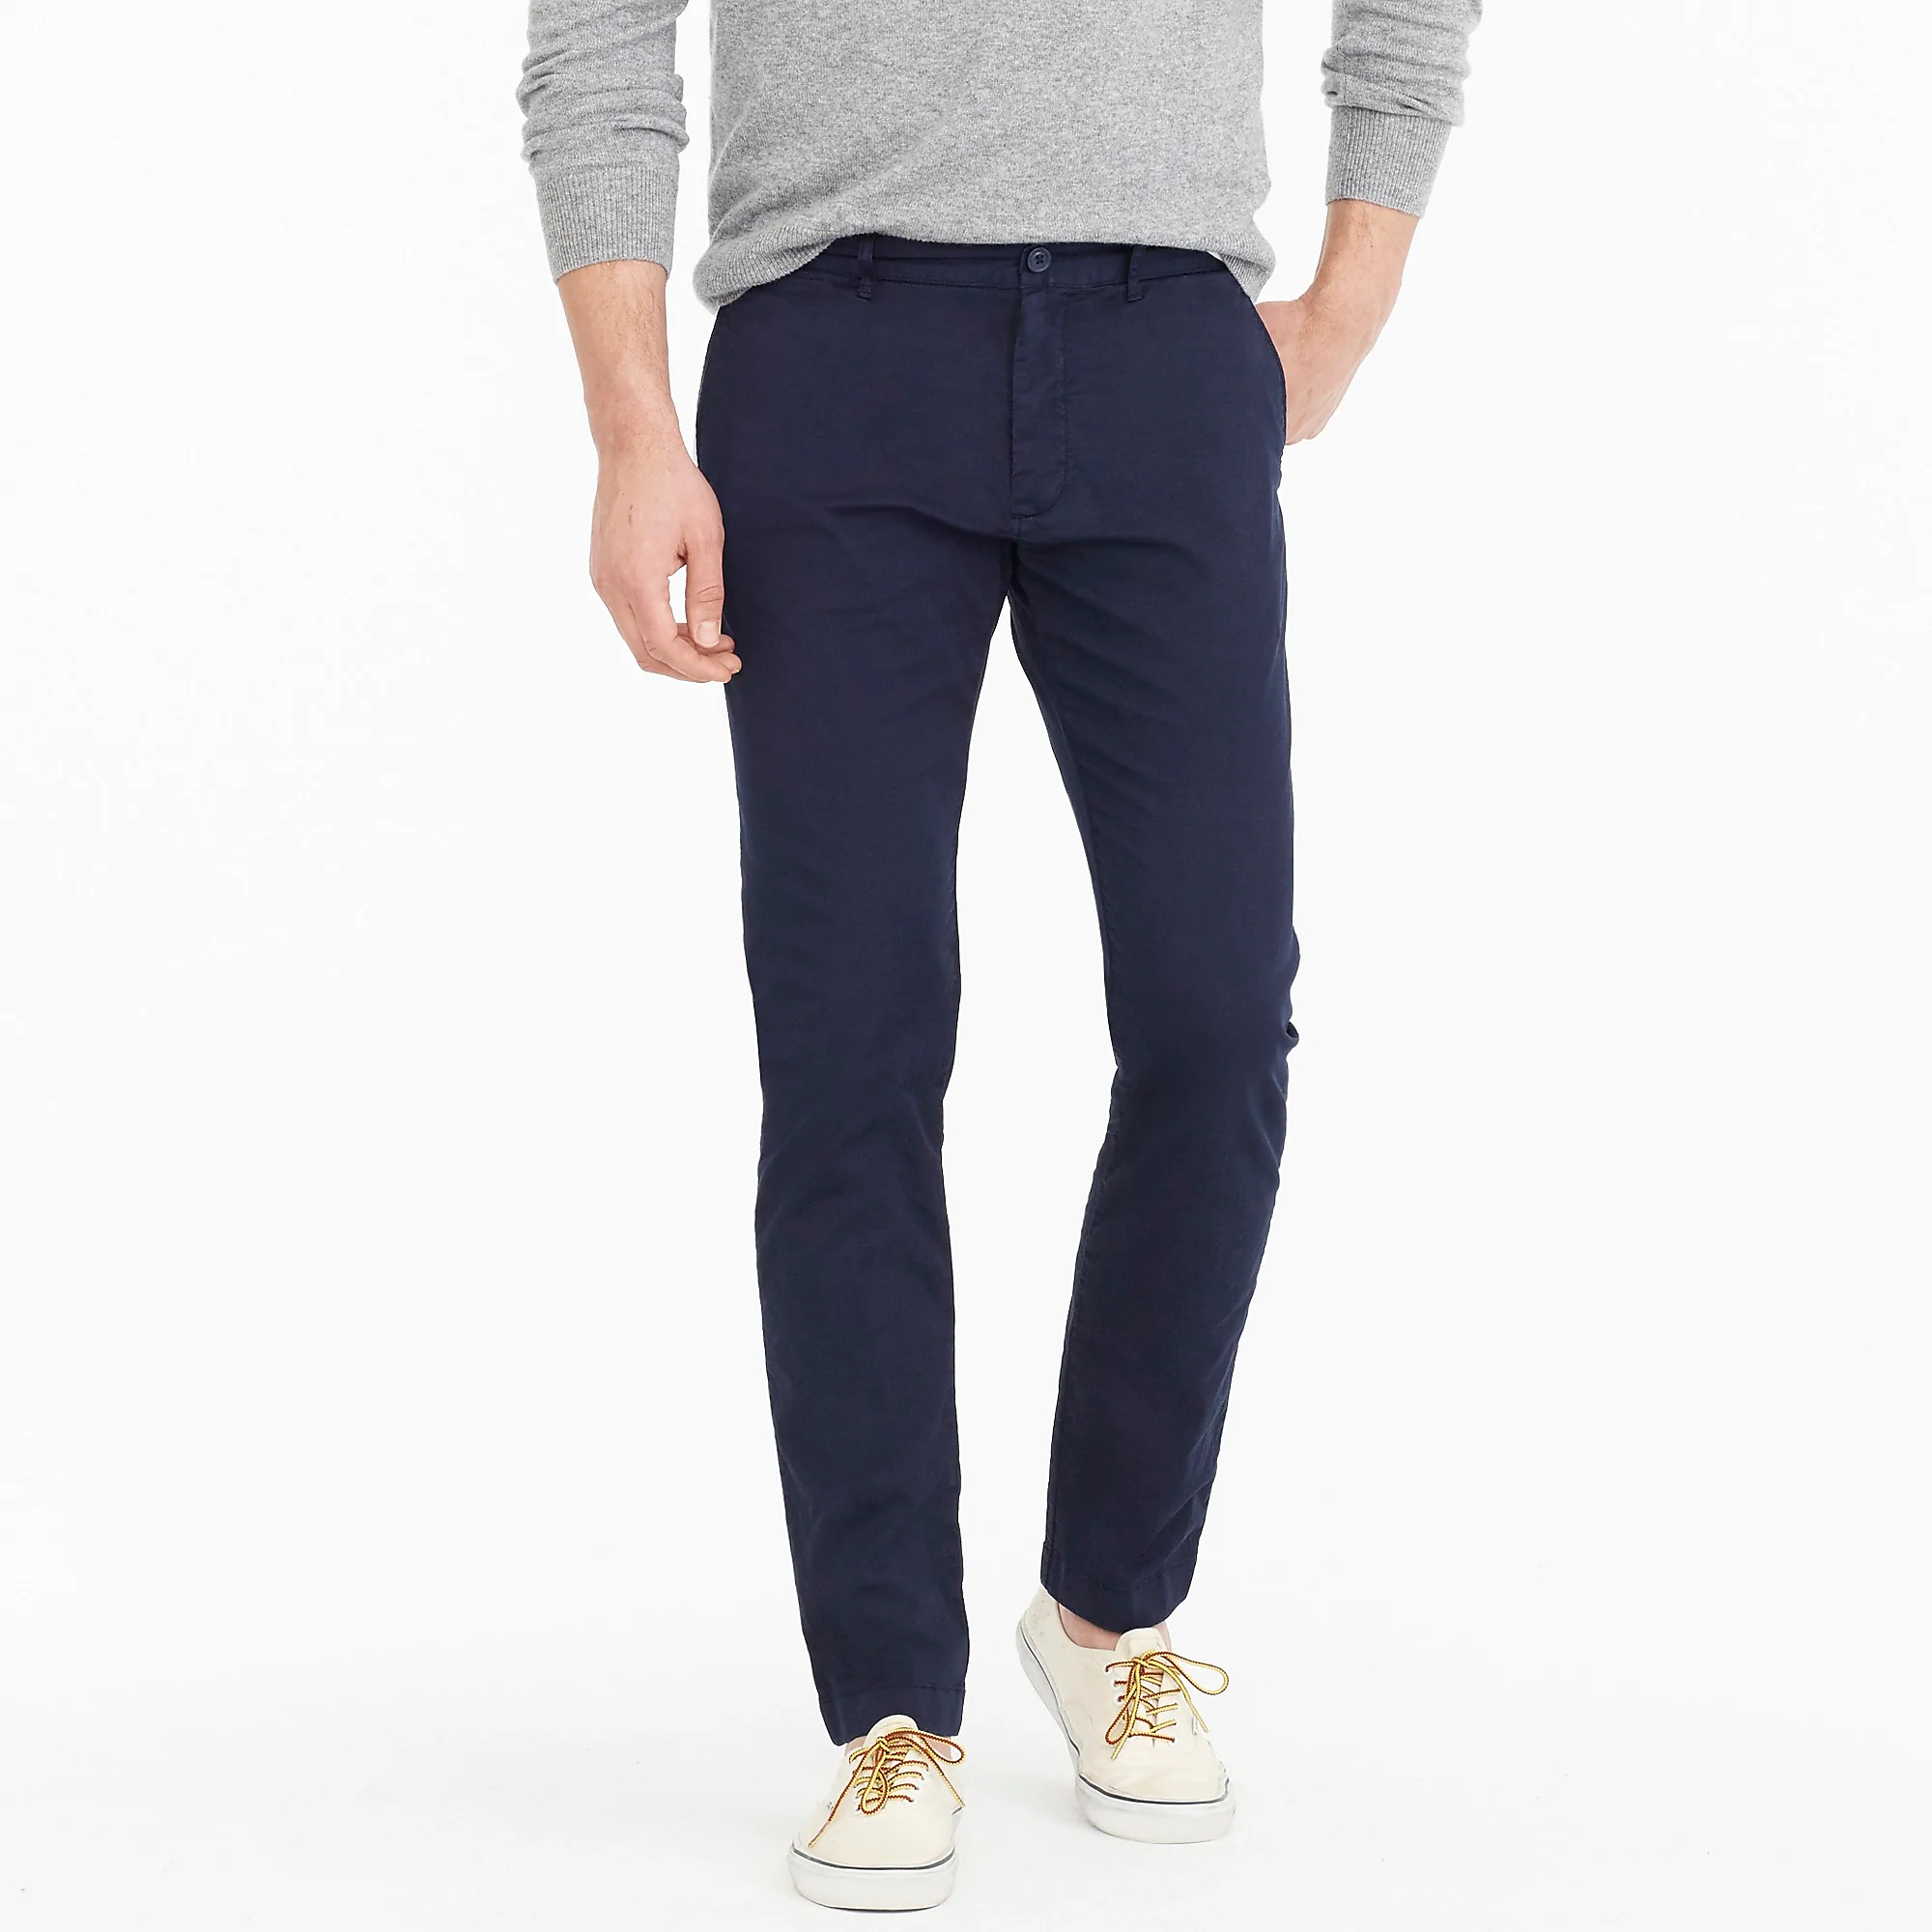 J. Crew 484 Chinos Men's Winter Fashion